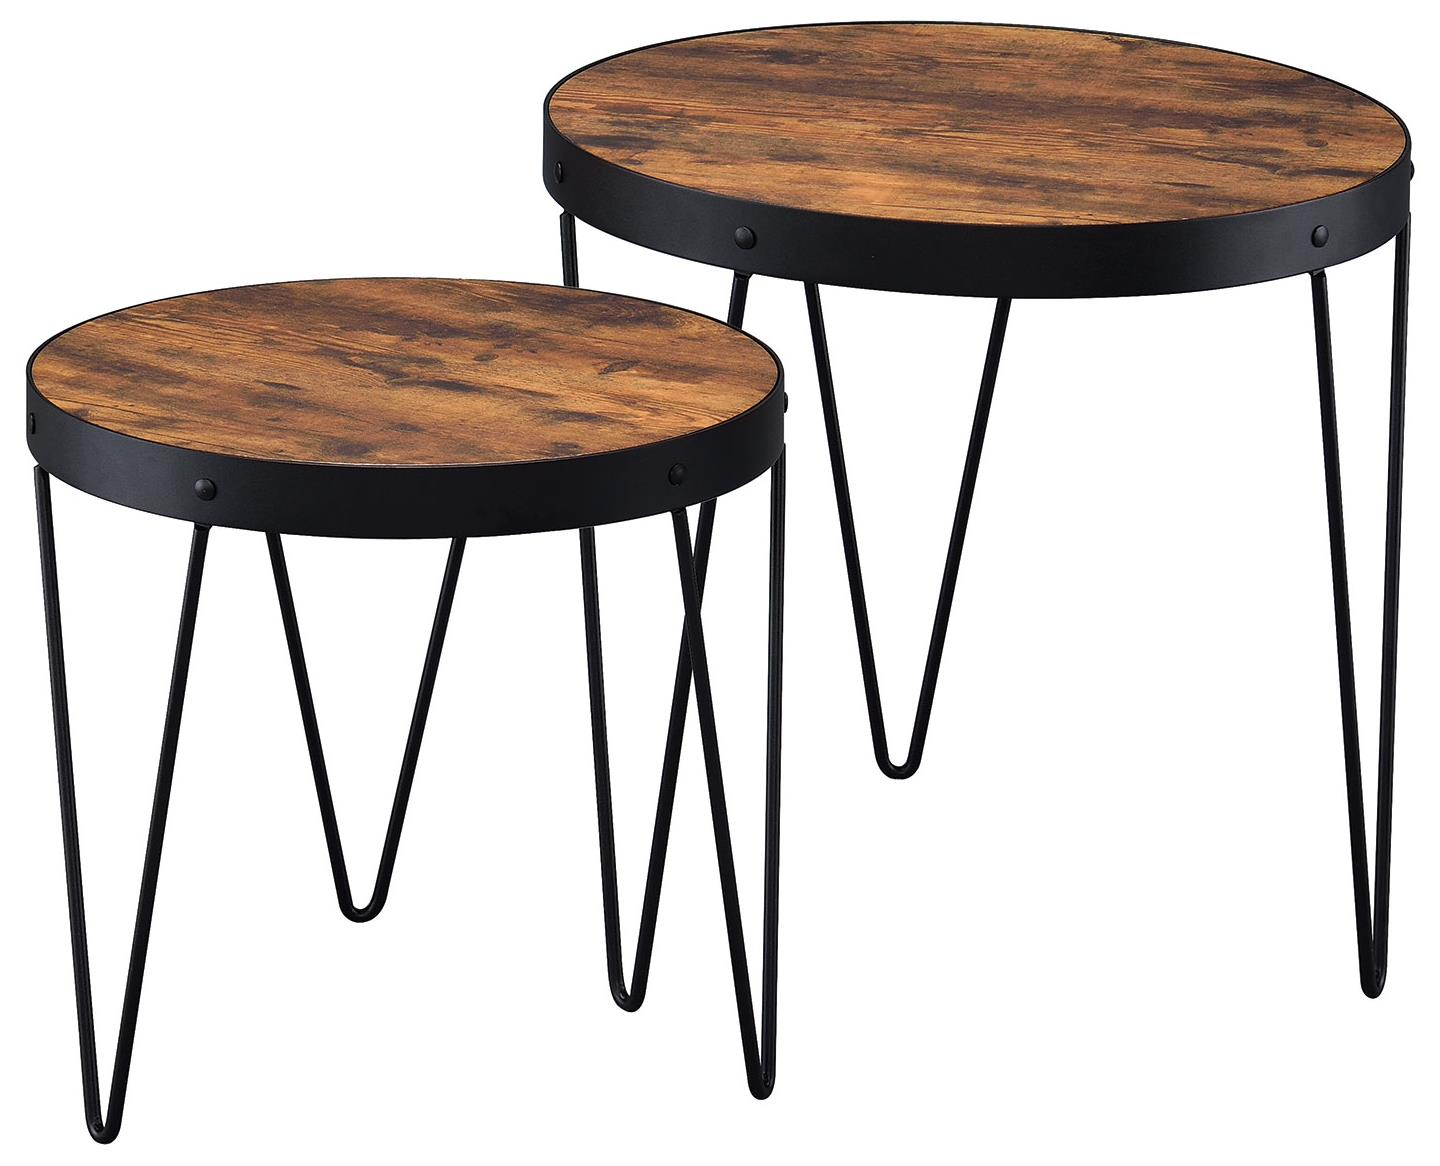 Coaster Nesting Tables Nesting Tables - Item Number: 901944